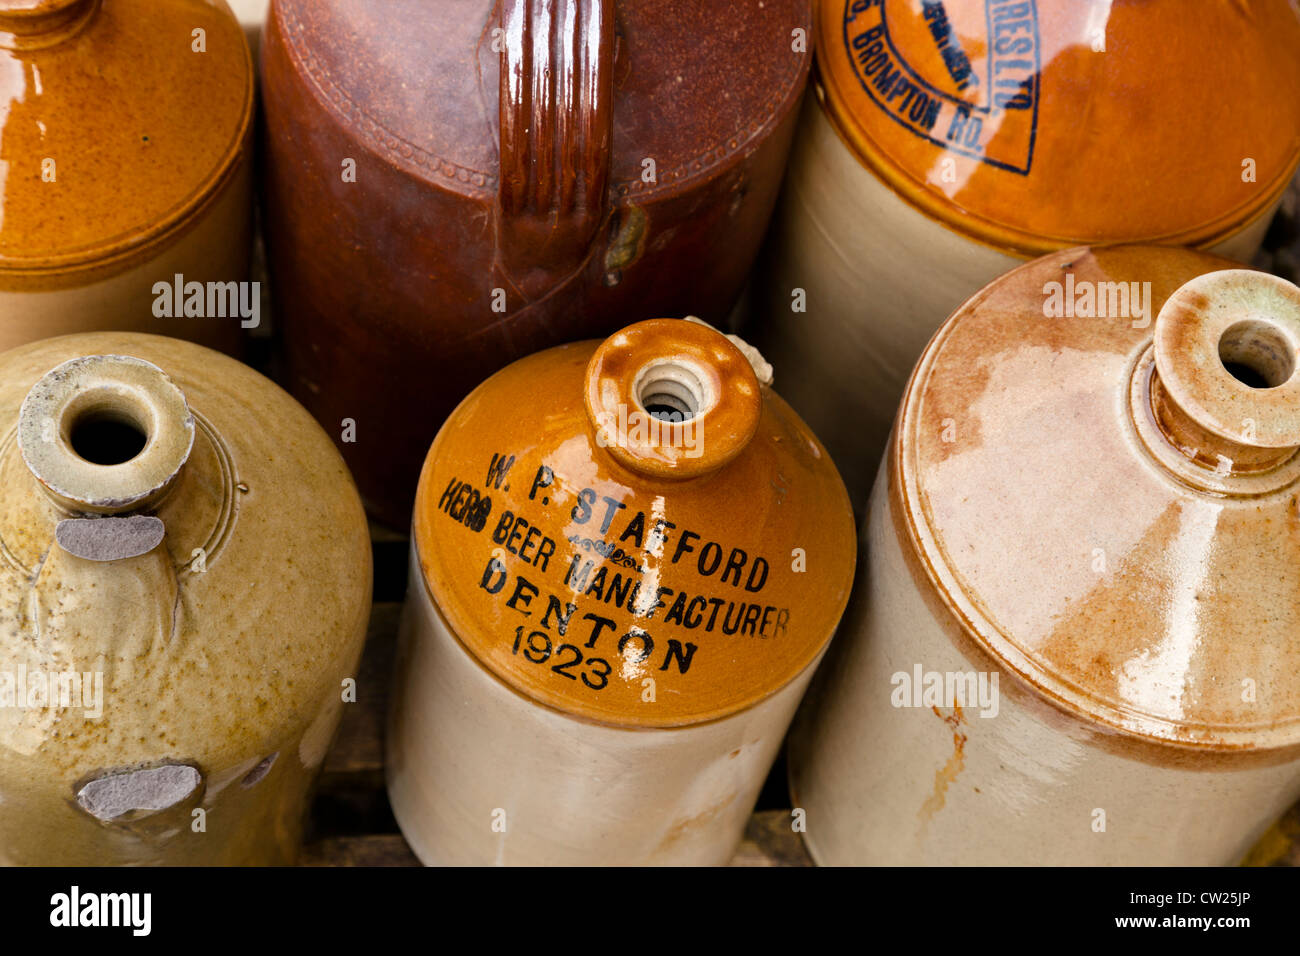 Collection of old stoneware herb or ginger beer flagons manufactured by W P Stafford of Denton - Stock Image